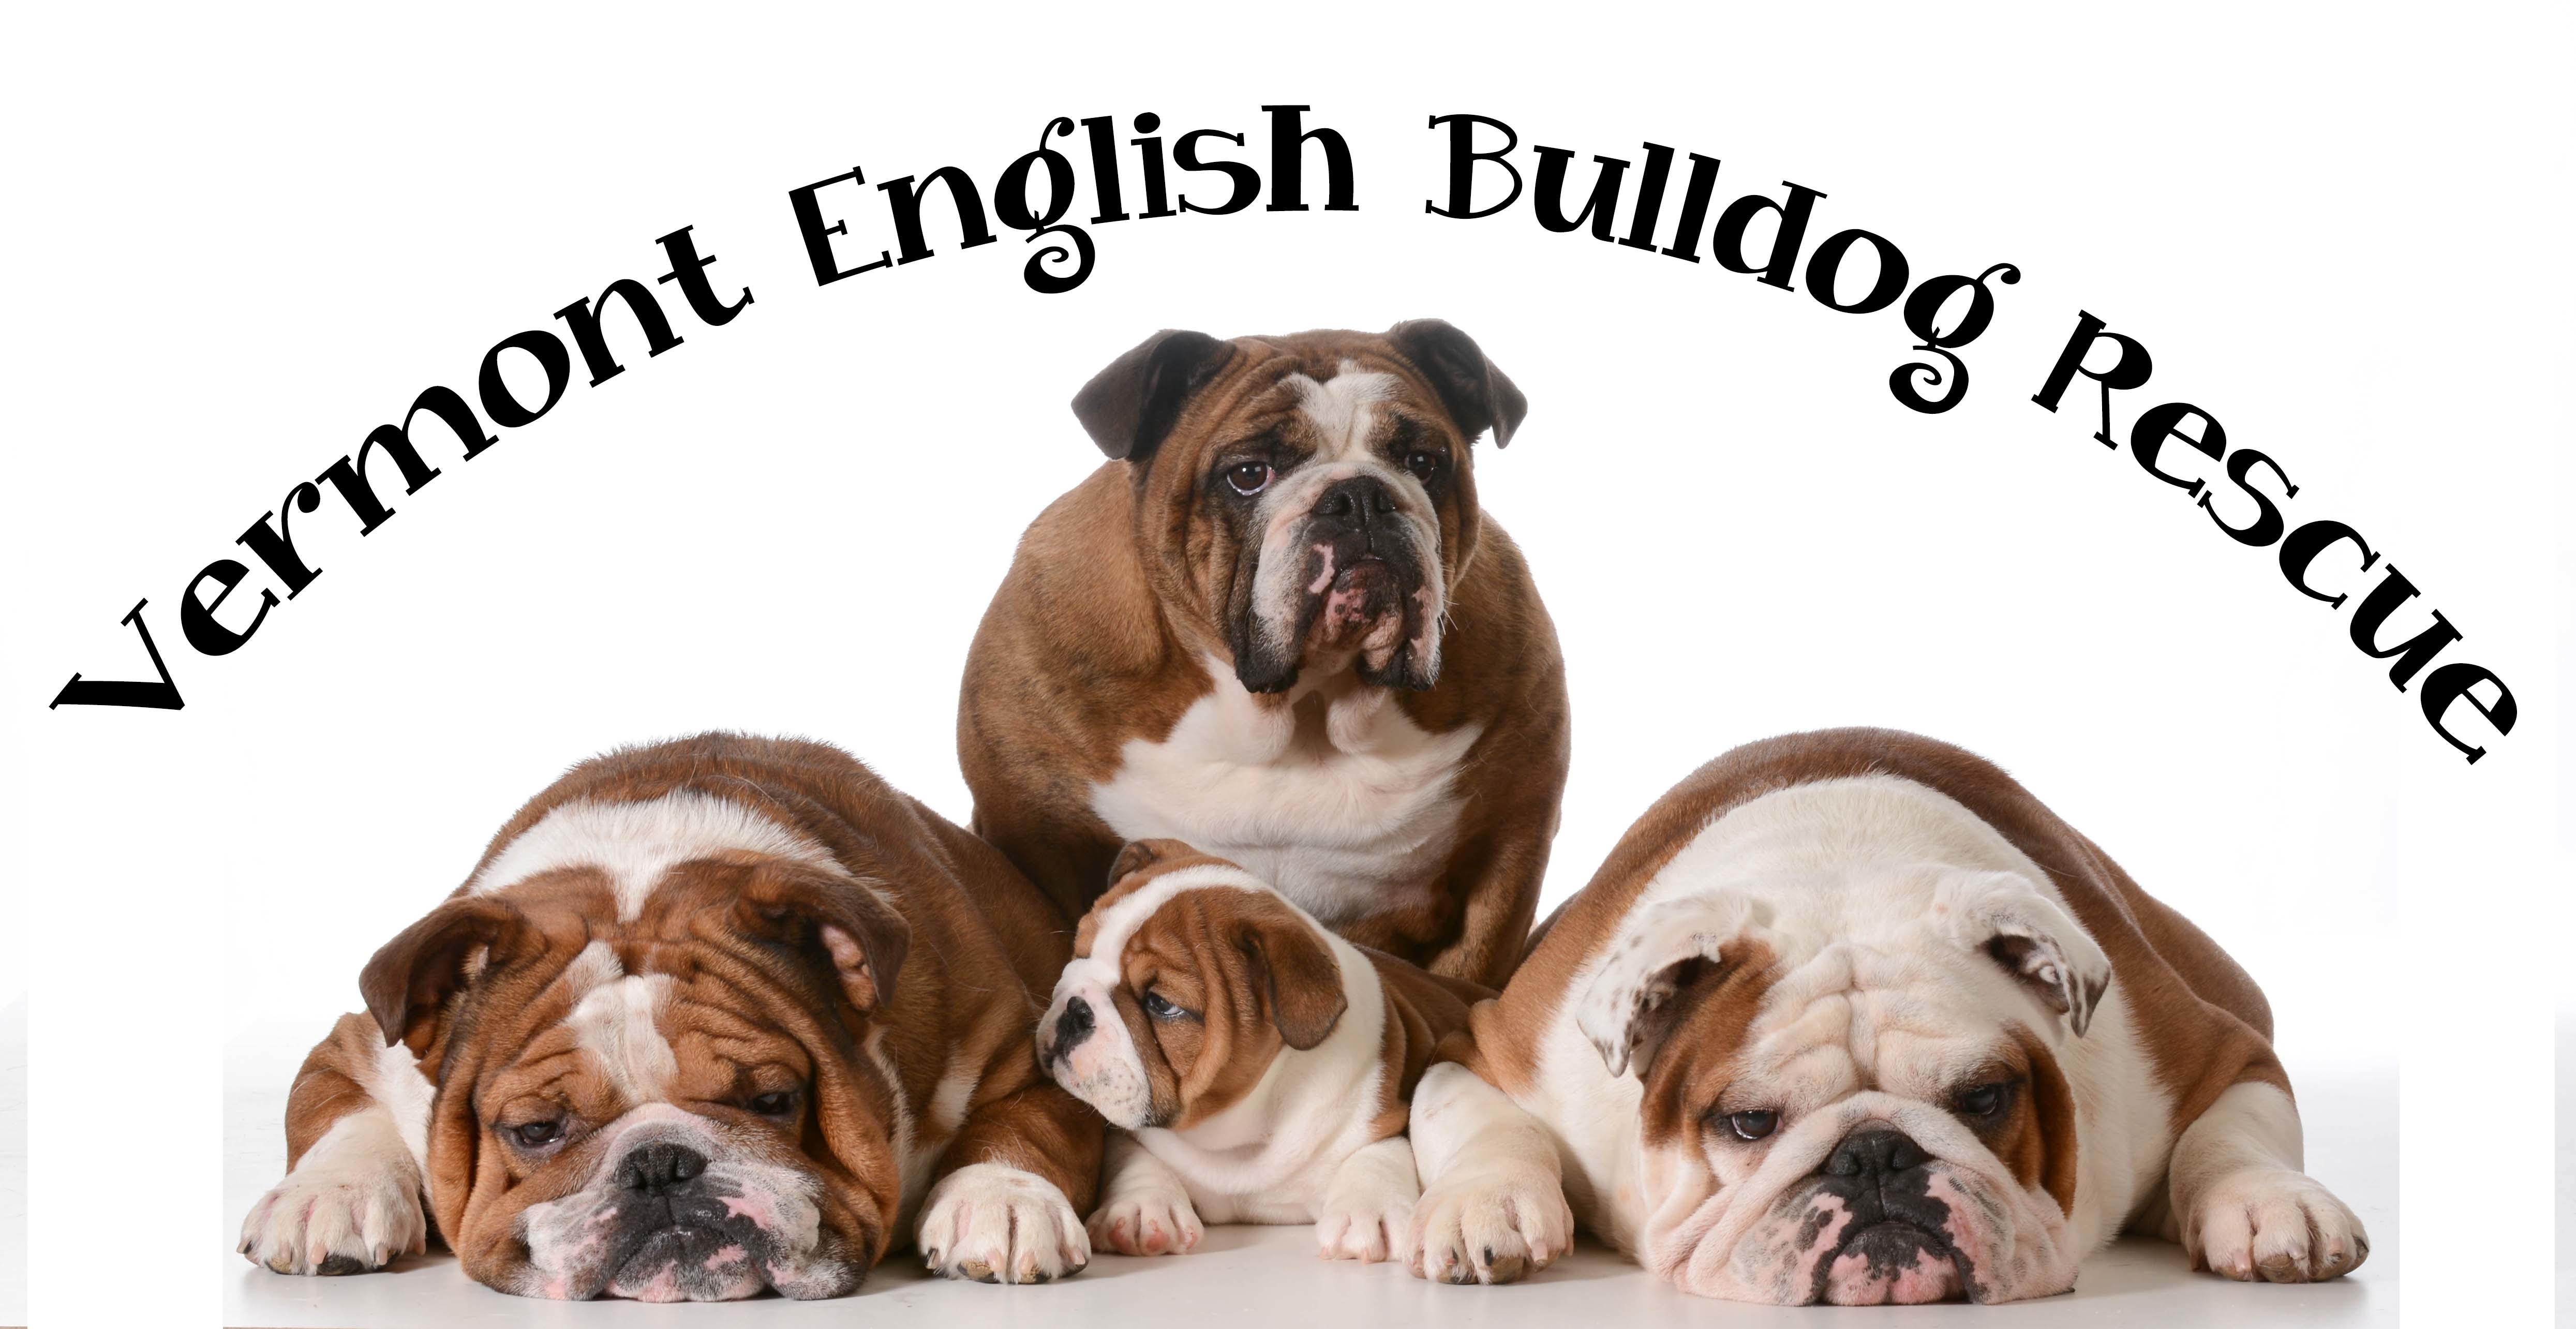 Excellent Car Alarm Installation Wiring Diagram Thick Guitar 3 Way Switch Flat 2 Wire Car Alarm Ibanez Dimarzio Old Tele 3 Way Switch BrightAdding An Electrical Circuit Pets For Adoption At Vermont English Bulldog Rescue, In Williston ..